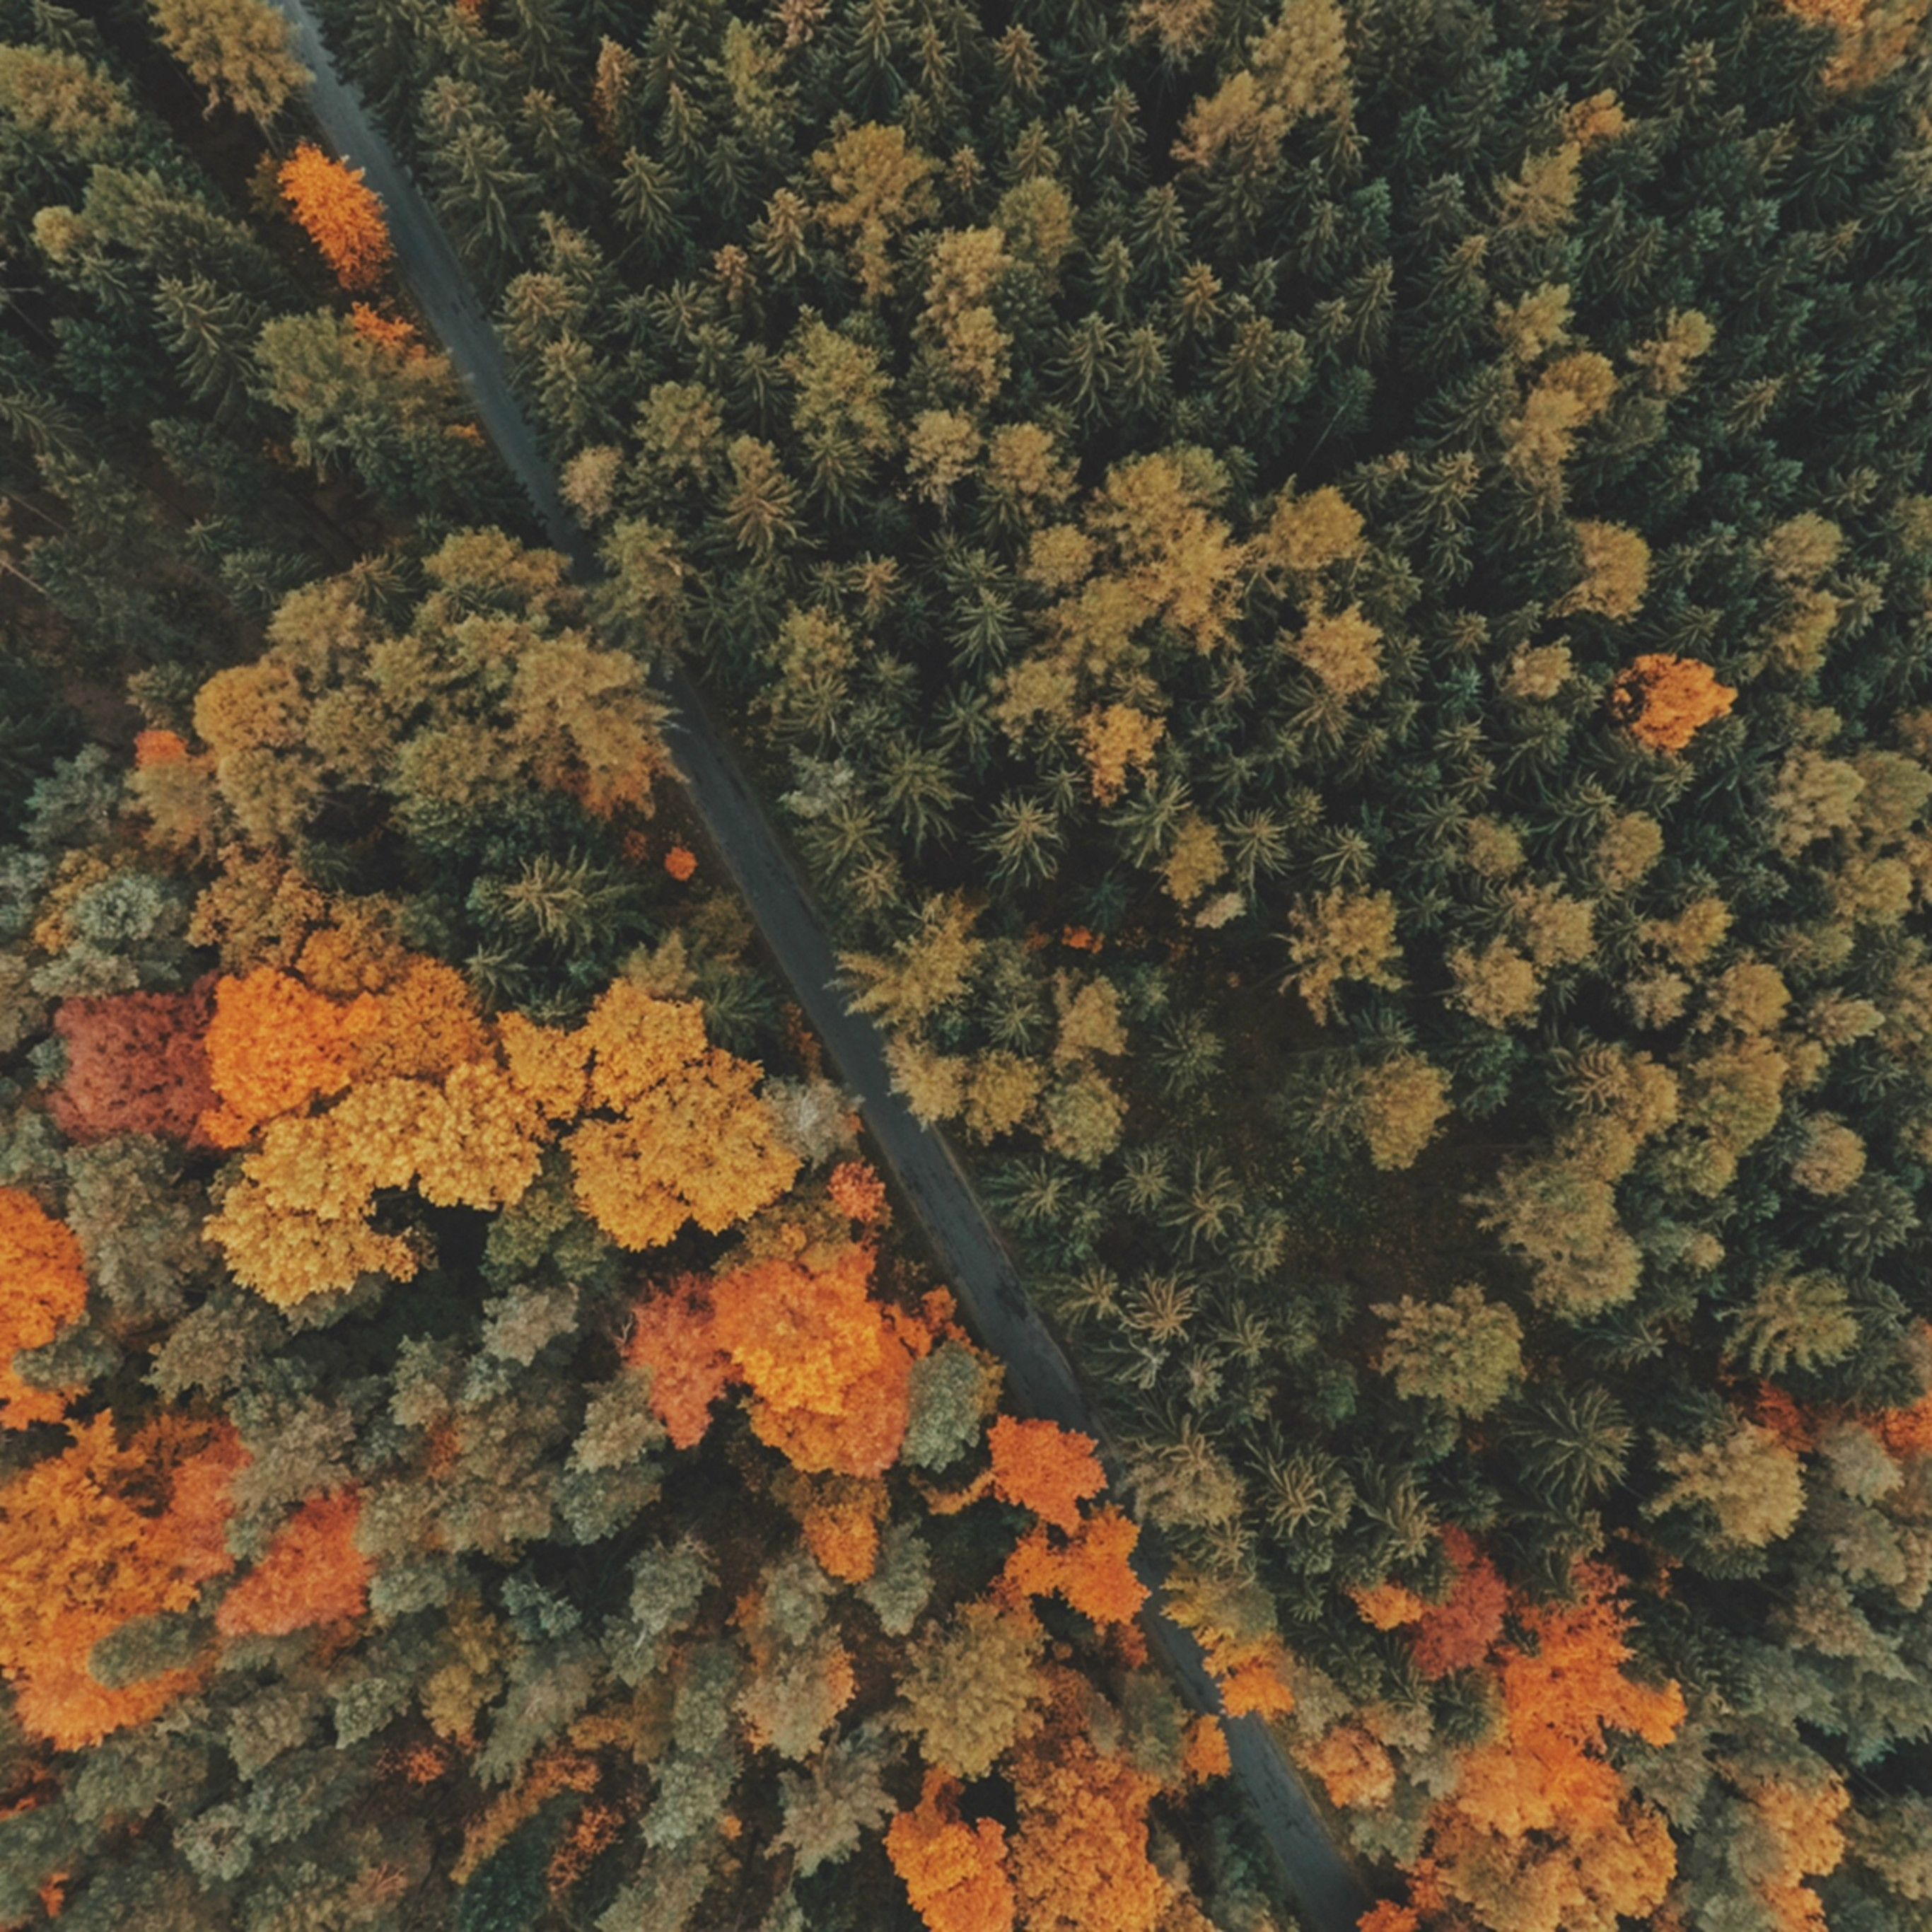 Forest Trees Top View Ipad Pro Wallpaper Desktop Wallpaper Fall Fall Wallpaper Trees Top View